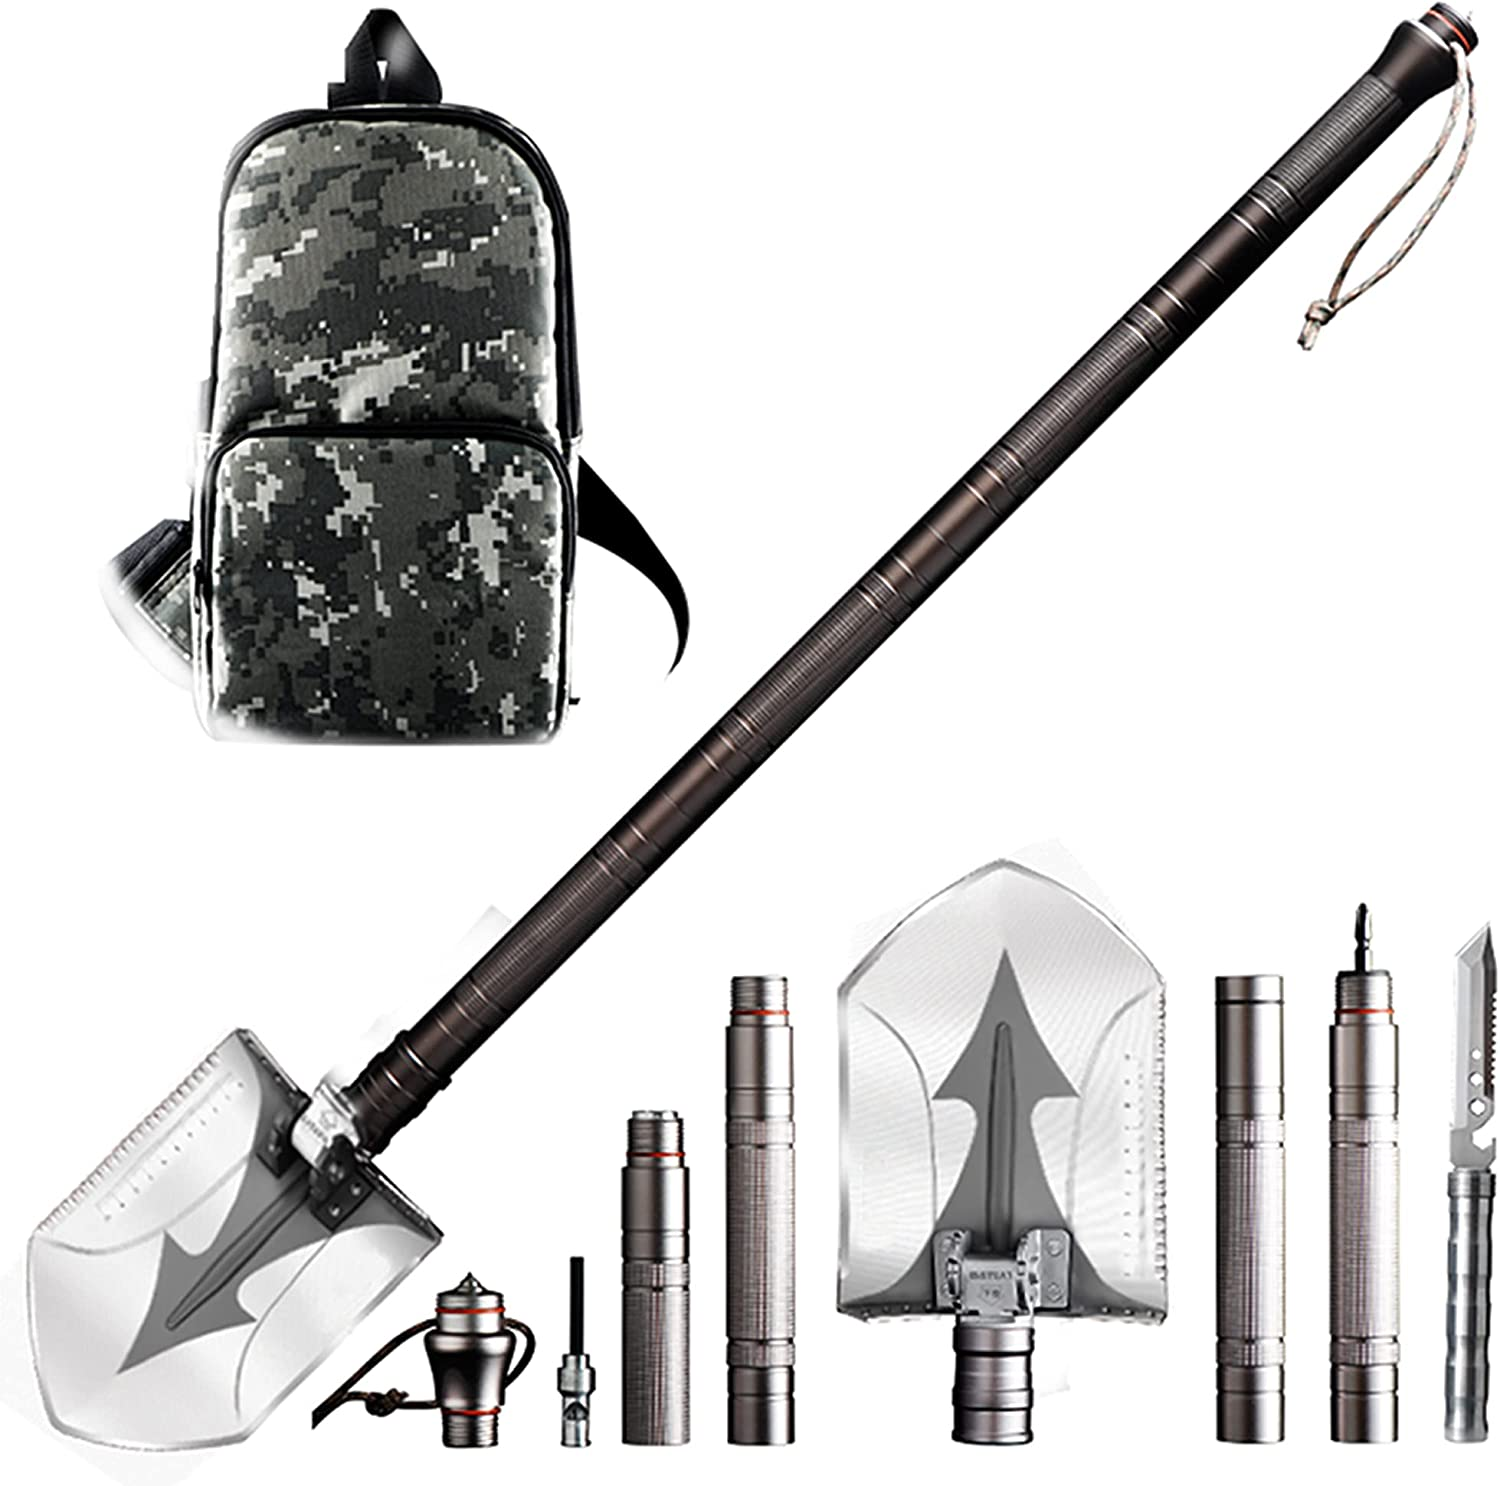 Discount is also underway Survival Shovel High quality new - 18 in Fol Camping Multitool Military 1